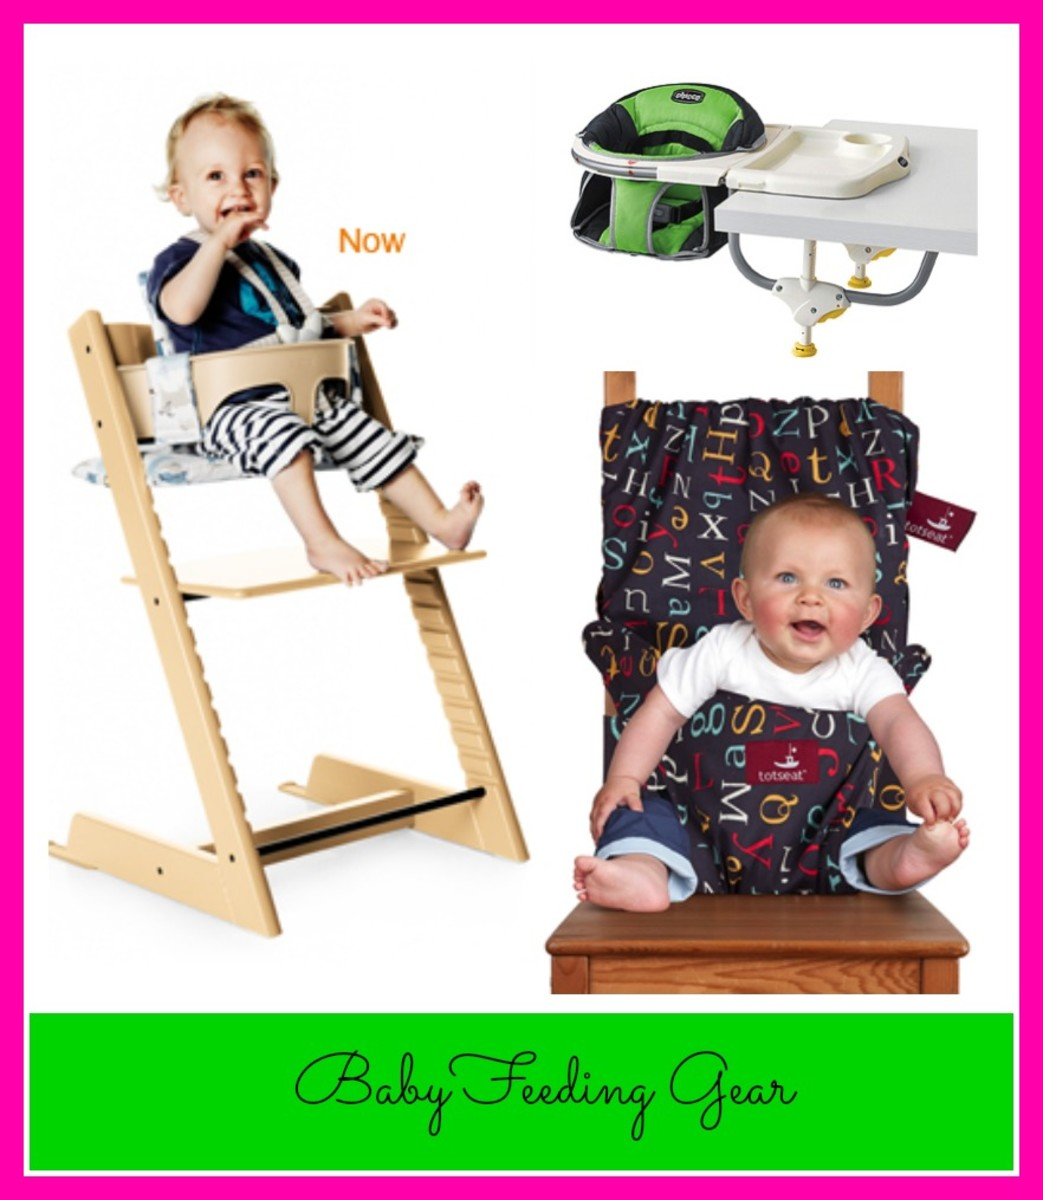 stokke tripp trapp, svan tot seat, chicco rotating 360 hook on chair, mealtime, feeding baby